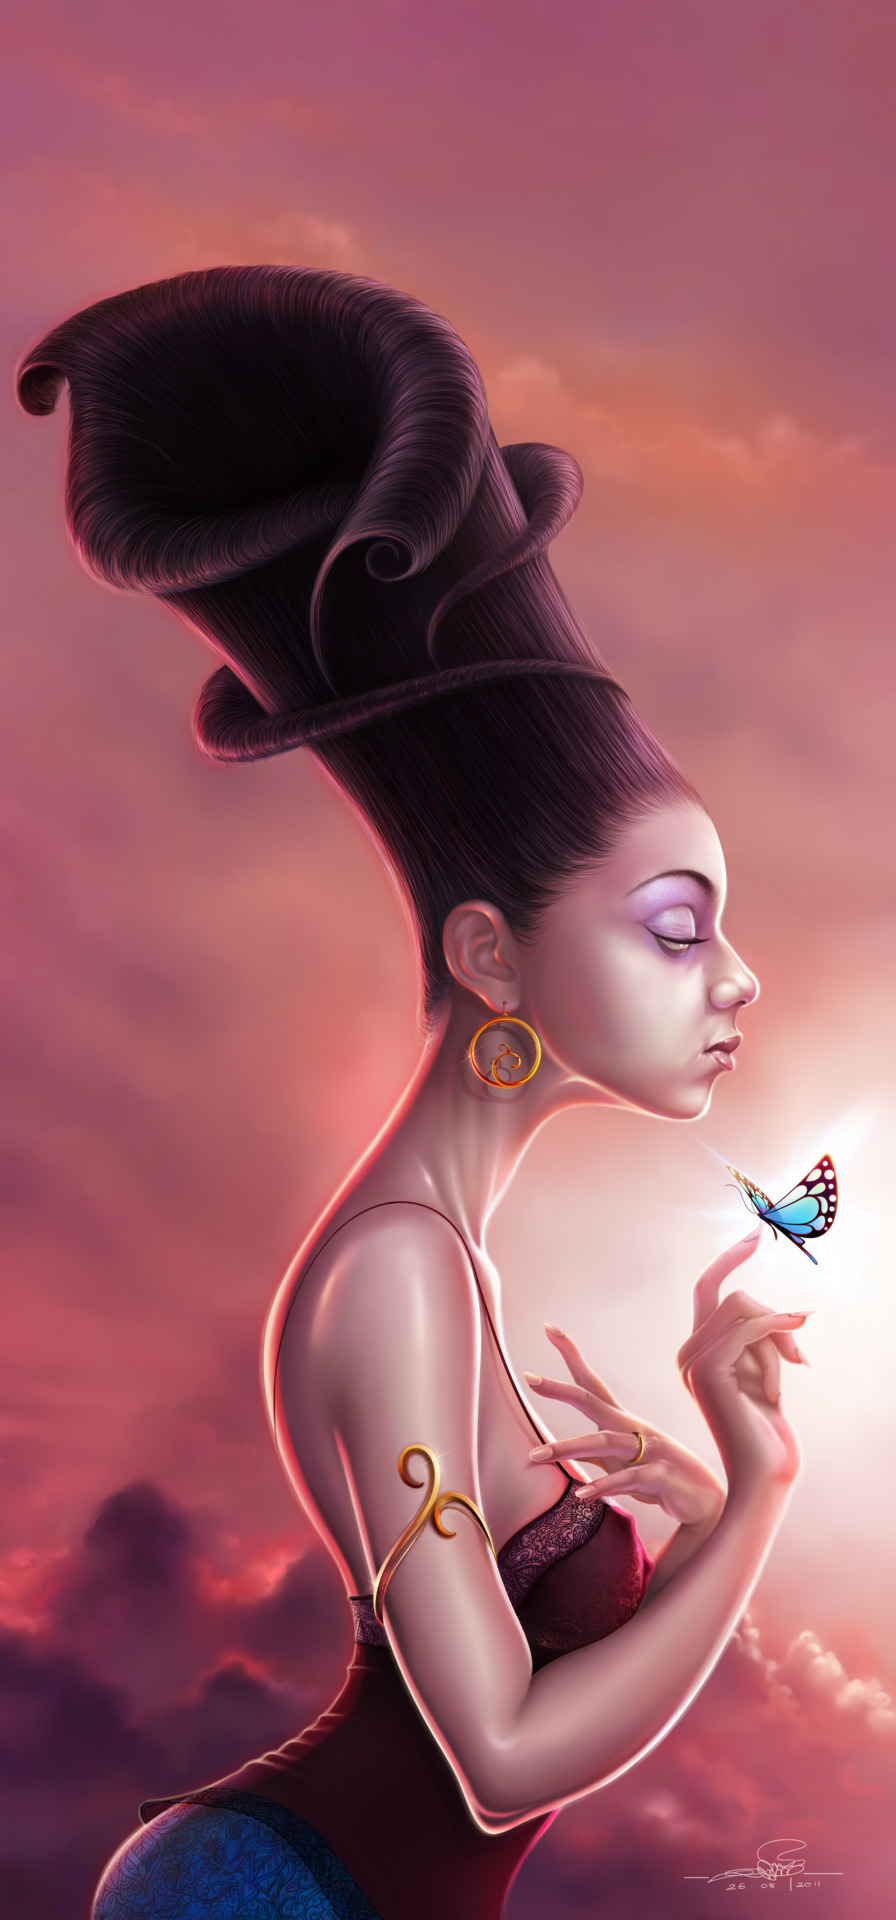 rawbdz:  Orchid QueenThis pretty damsel with a flowery hairstyle was an inspiration I had while sketching a flower for a project I was on. I had to do quite a bit of browsing for lighting up this sketch the way it has been done and also to perfect, for which I looked up the works of many wonderful artists.